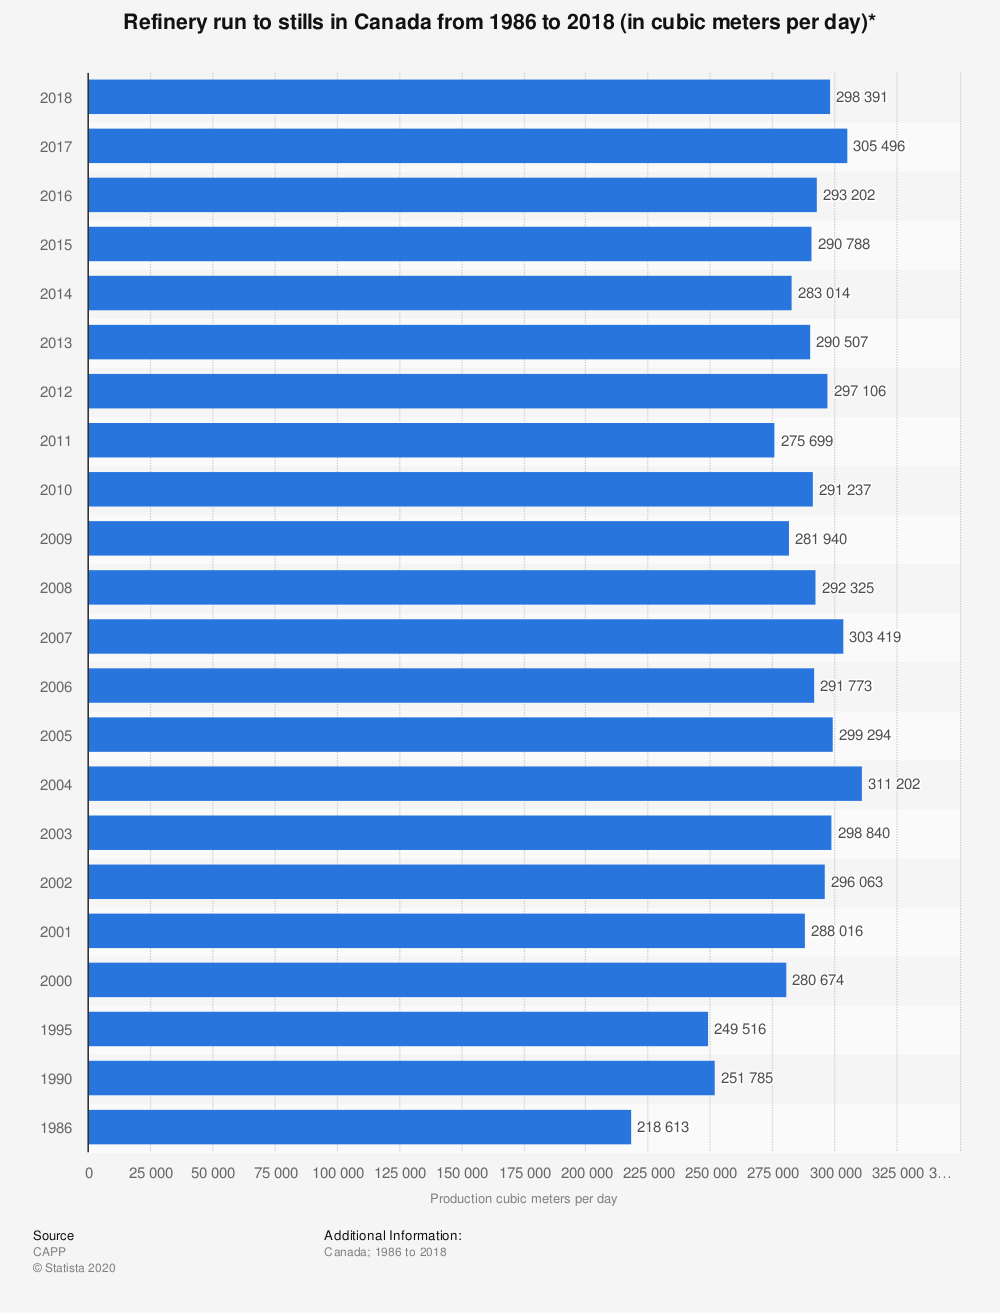 Statistic: Refinery run to stills in Canada from 1986 to 2018 (in cubic meters per day)* | Statista